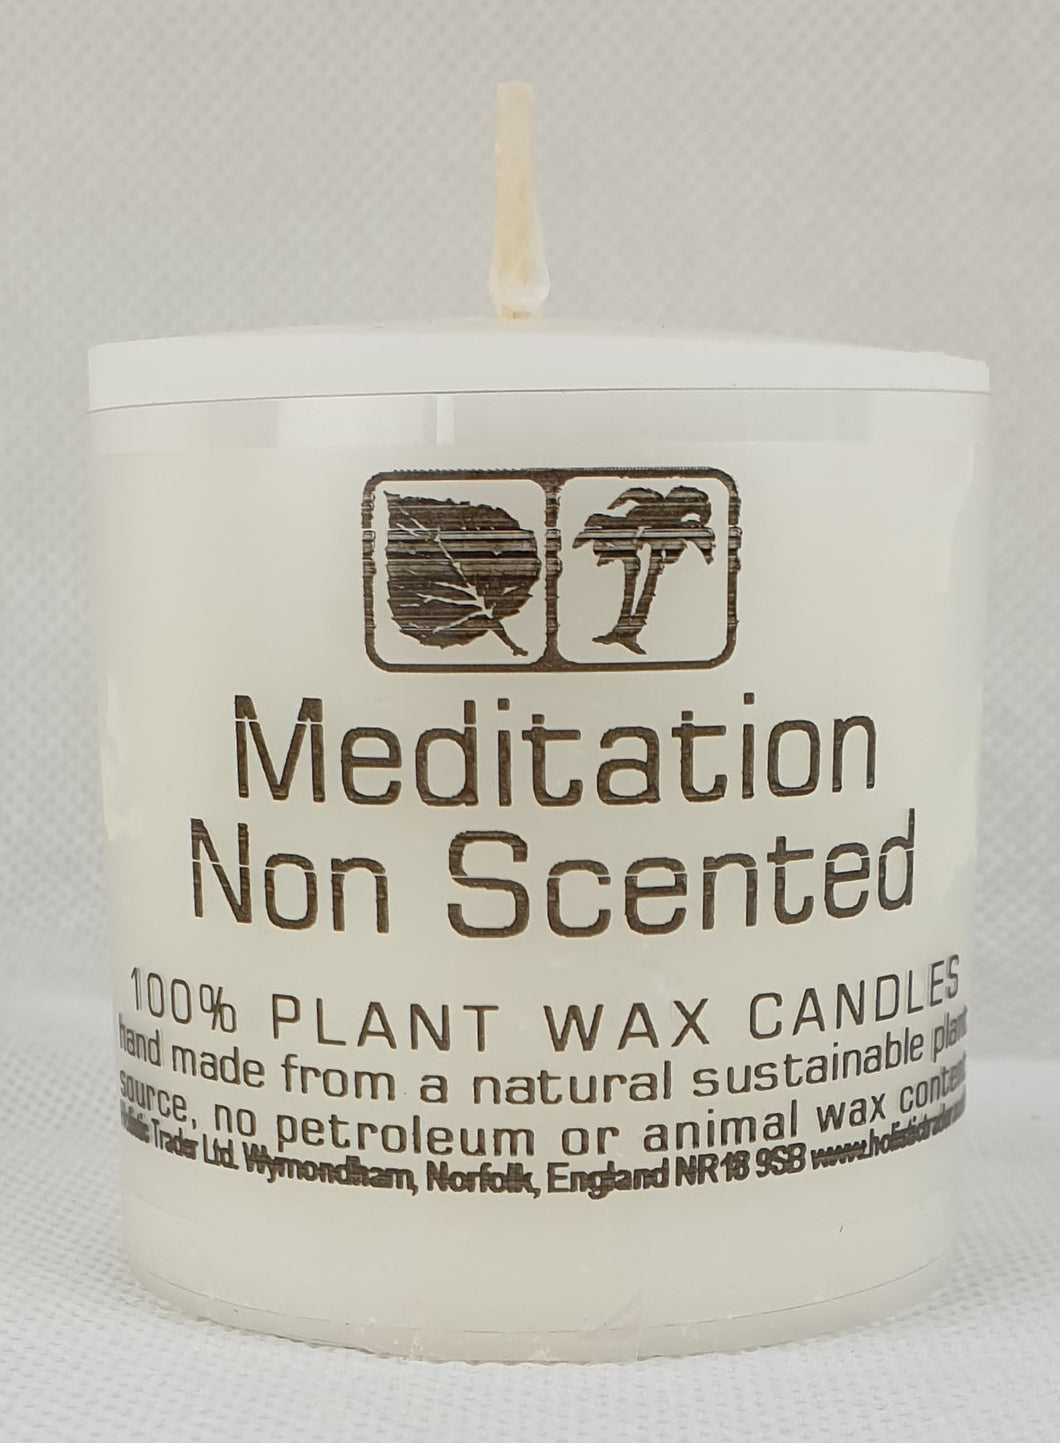 Non Scented Meditation Candle